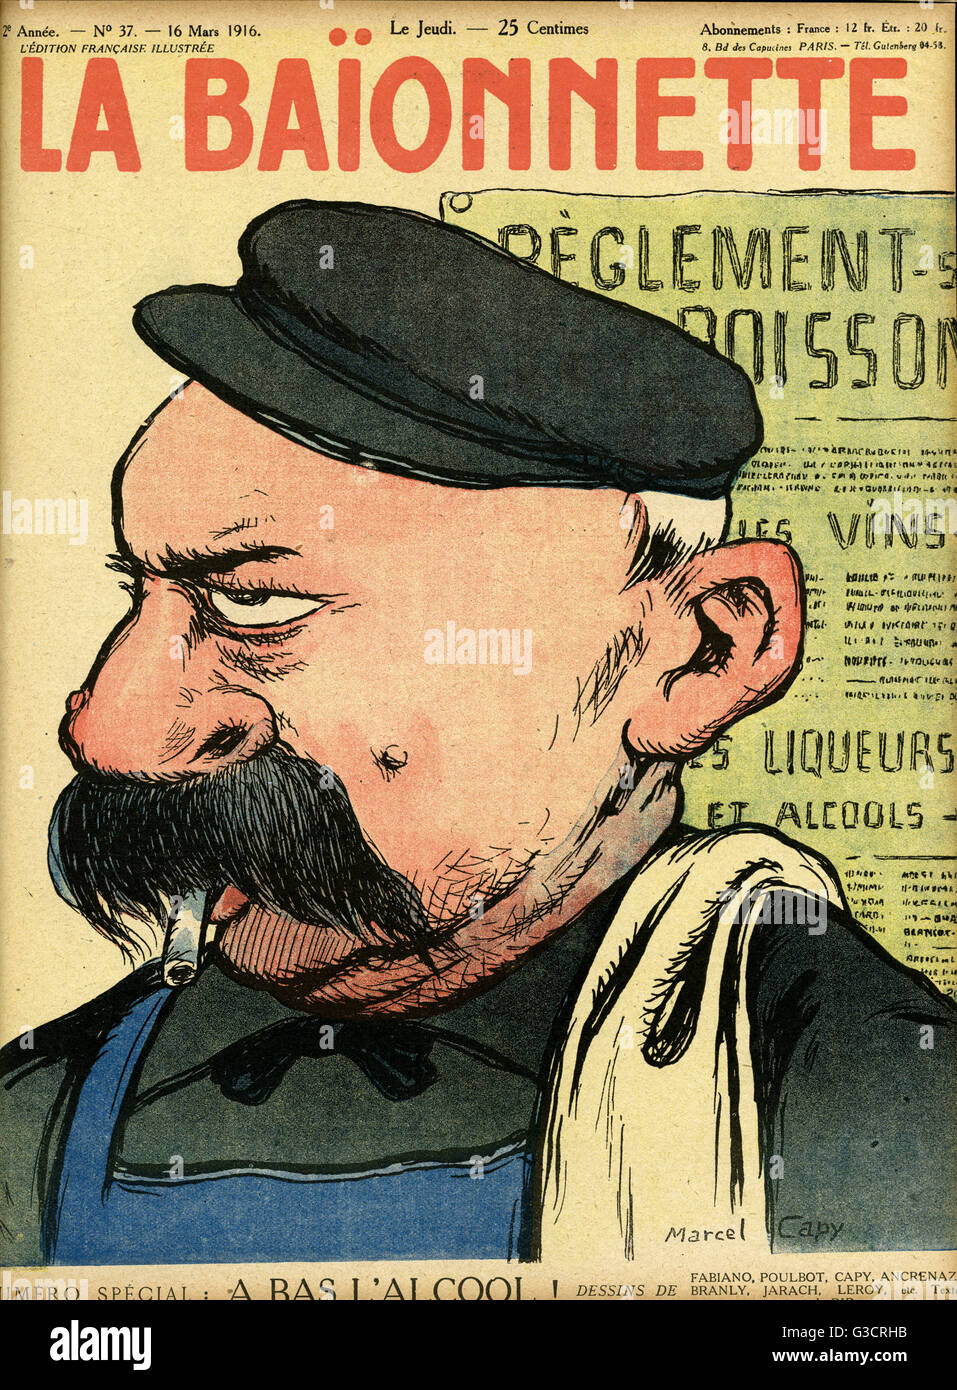 Front cover design for La Baionnette, an issue focusing on alcohol restrictions.  Depicting a rather disgruntled - Stock Image